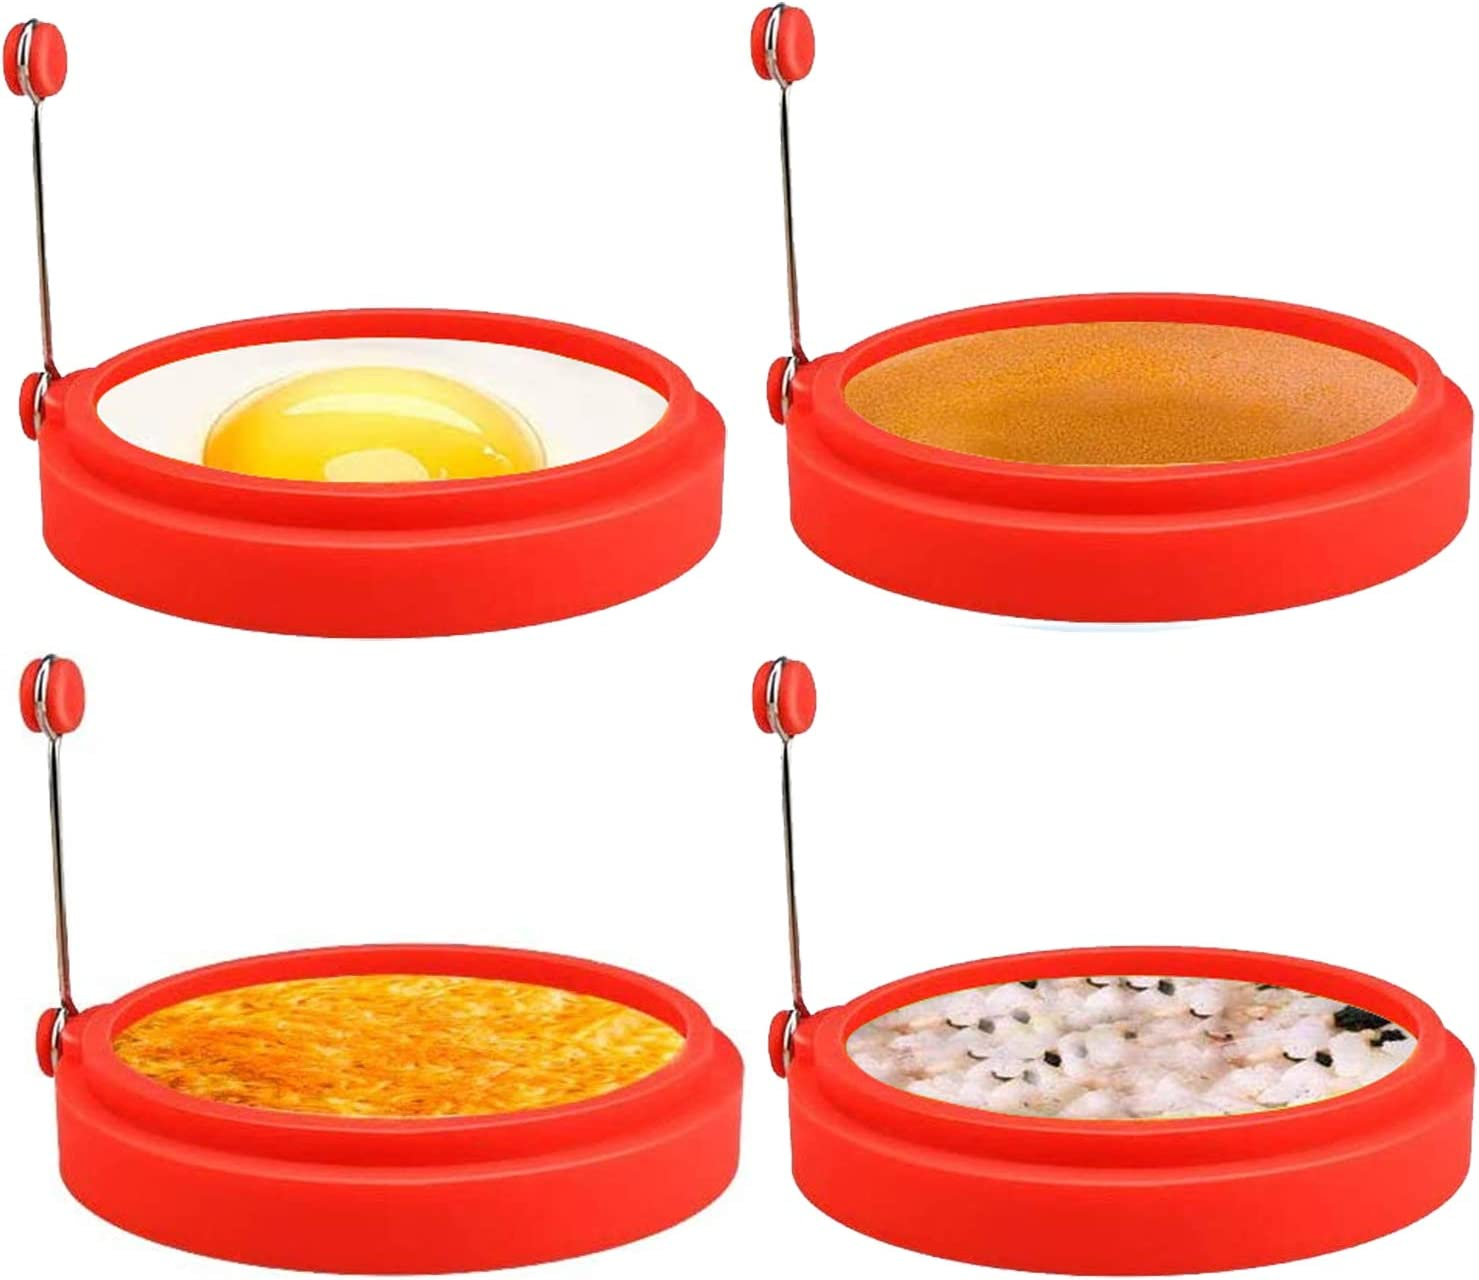 Silicone Egg Rings, 4 Inch Food Grade Egg Cooking Rings, Non Stick Fried Egg Ring Mold, Pancake Breakfast Sandwiches, Egg Mcmuffin Ring(Red,4Pack)…